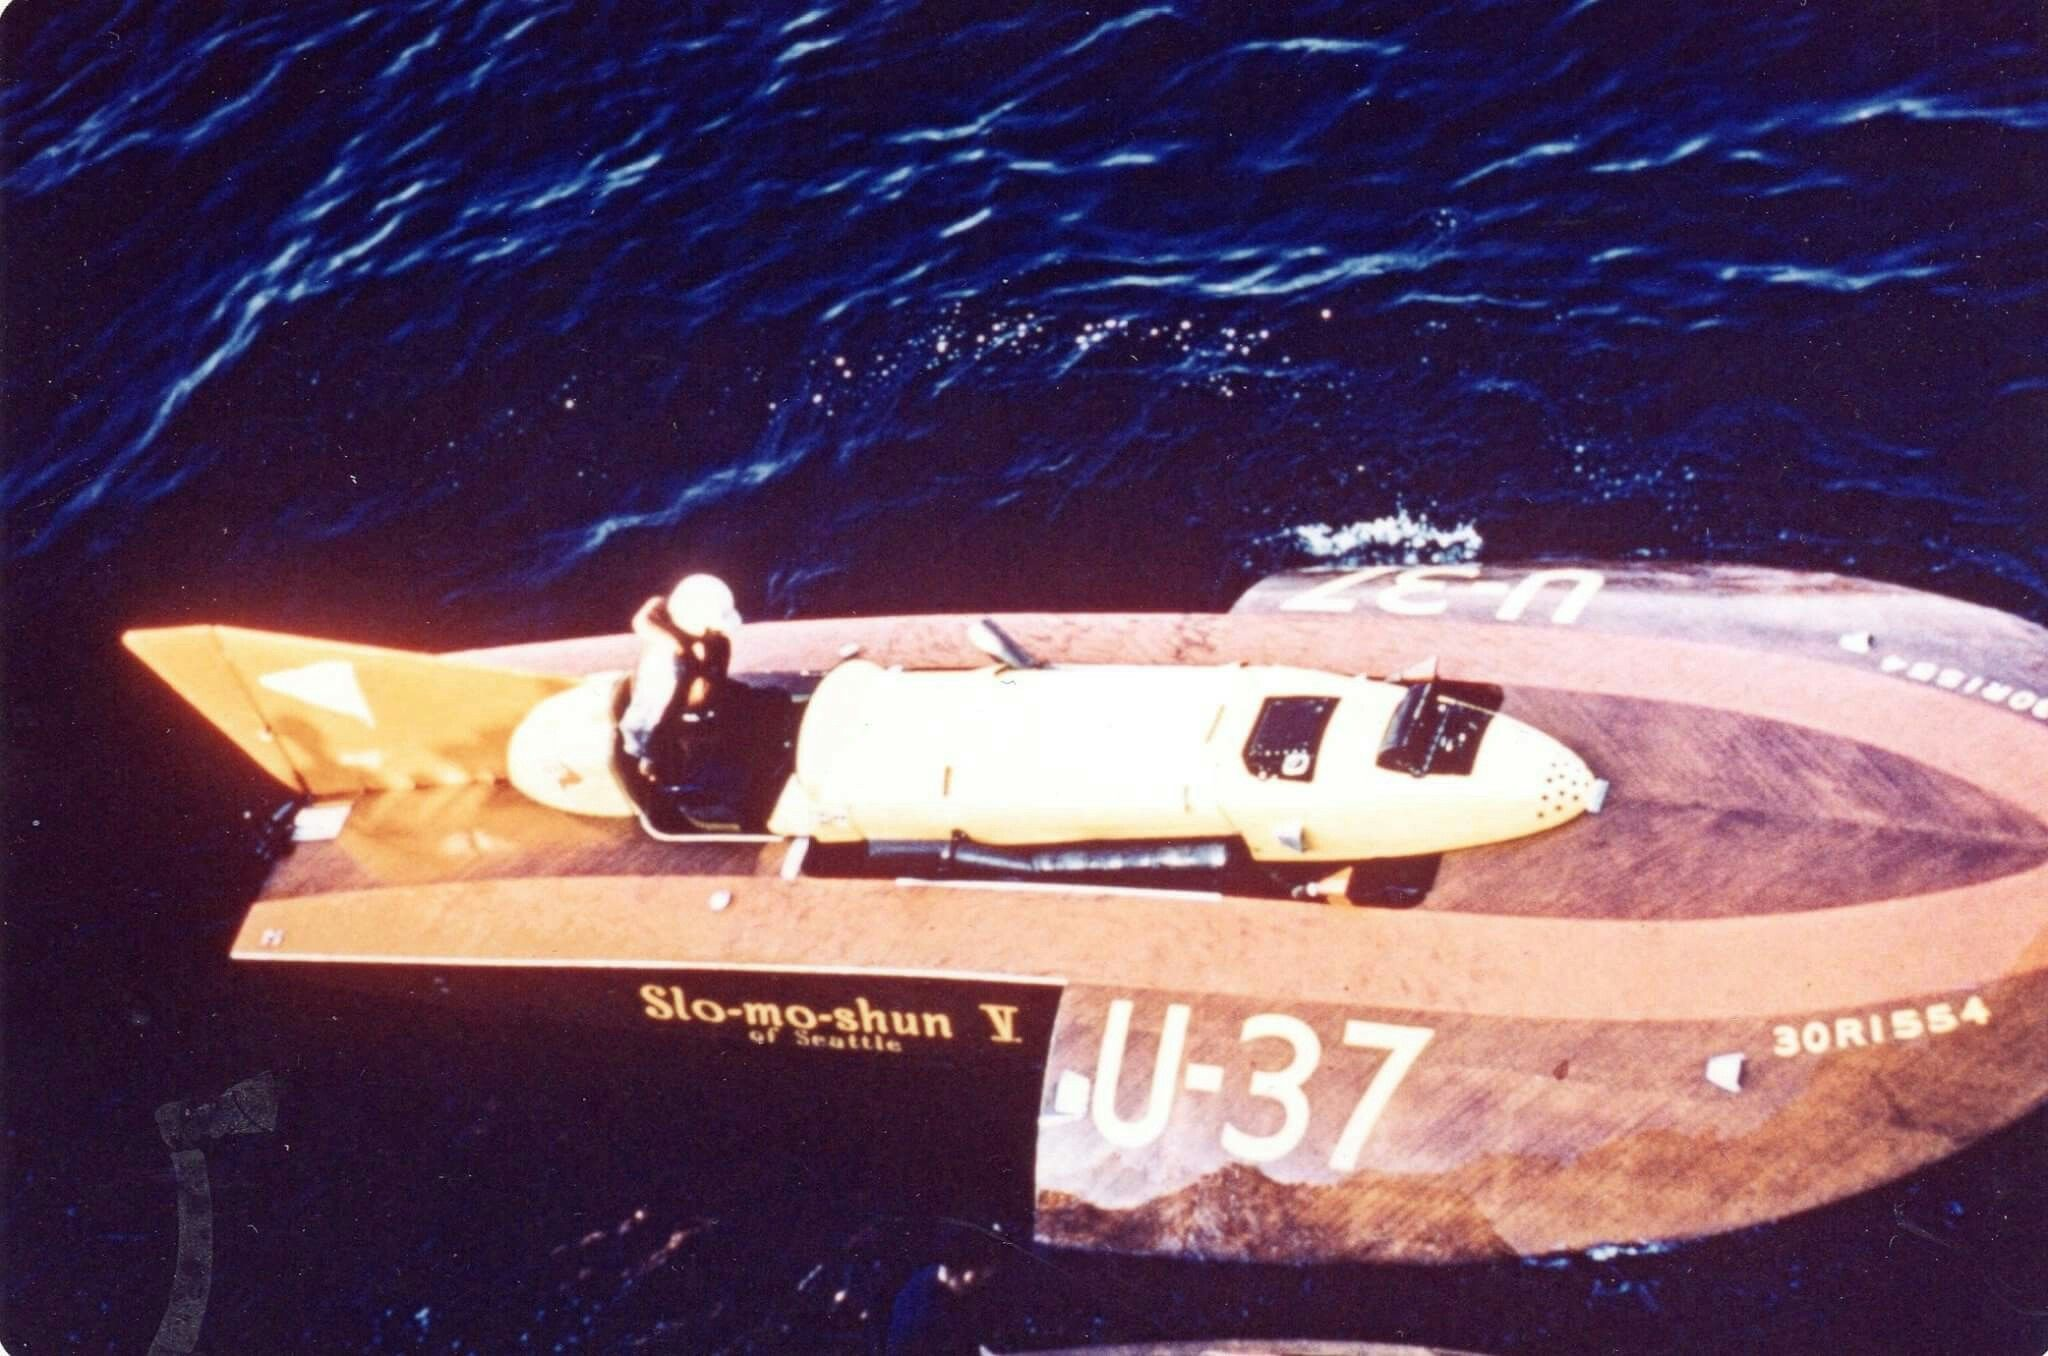 1951 SloMoShun V of Seattle Hydroplane, Hydroplane racing